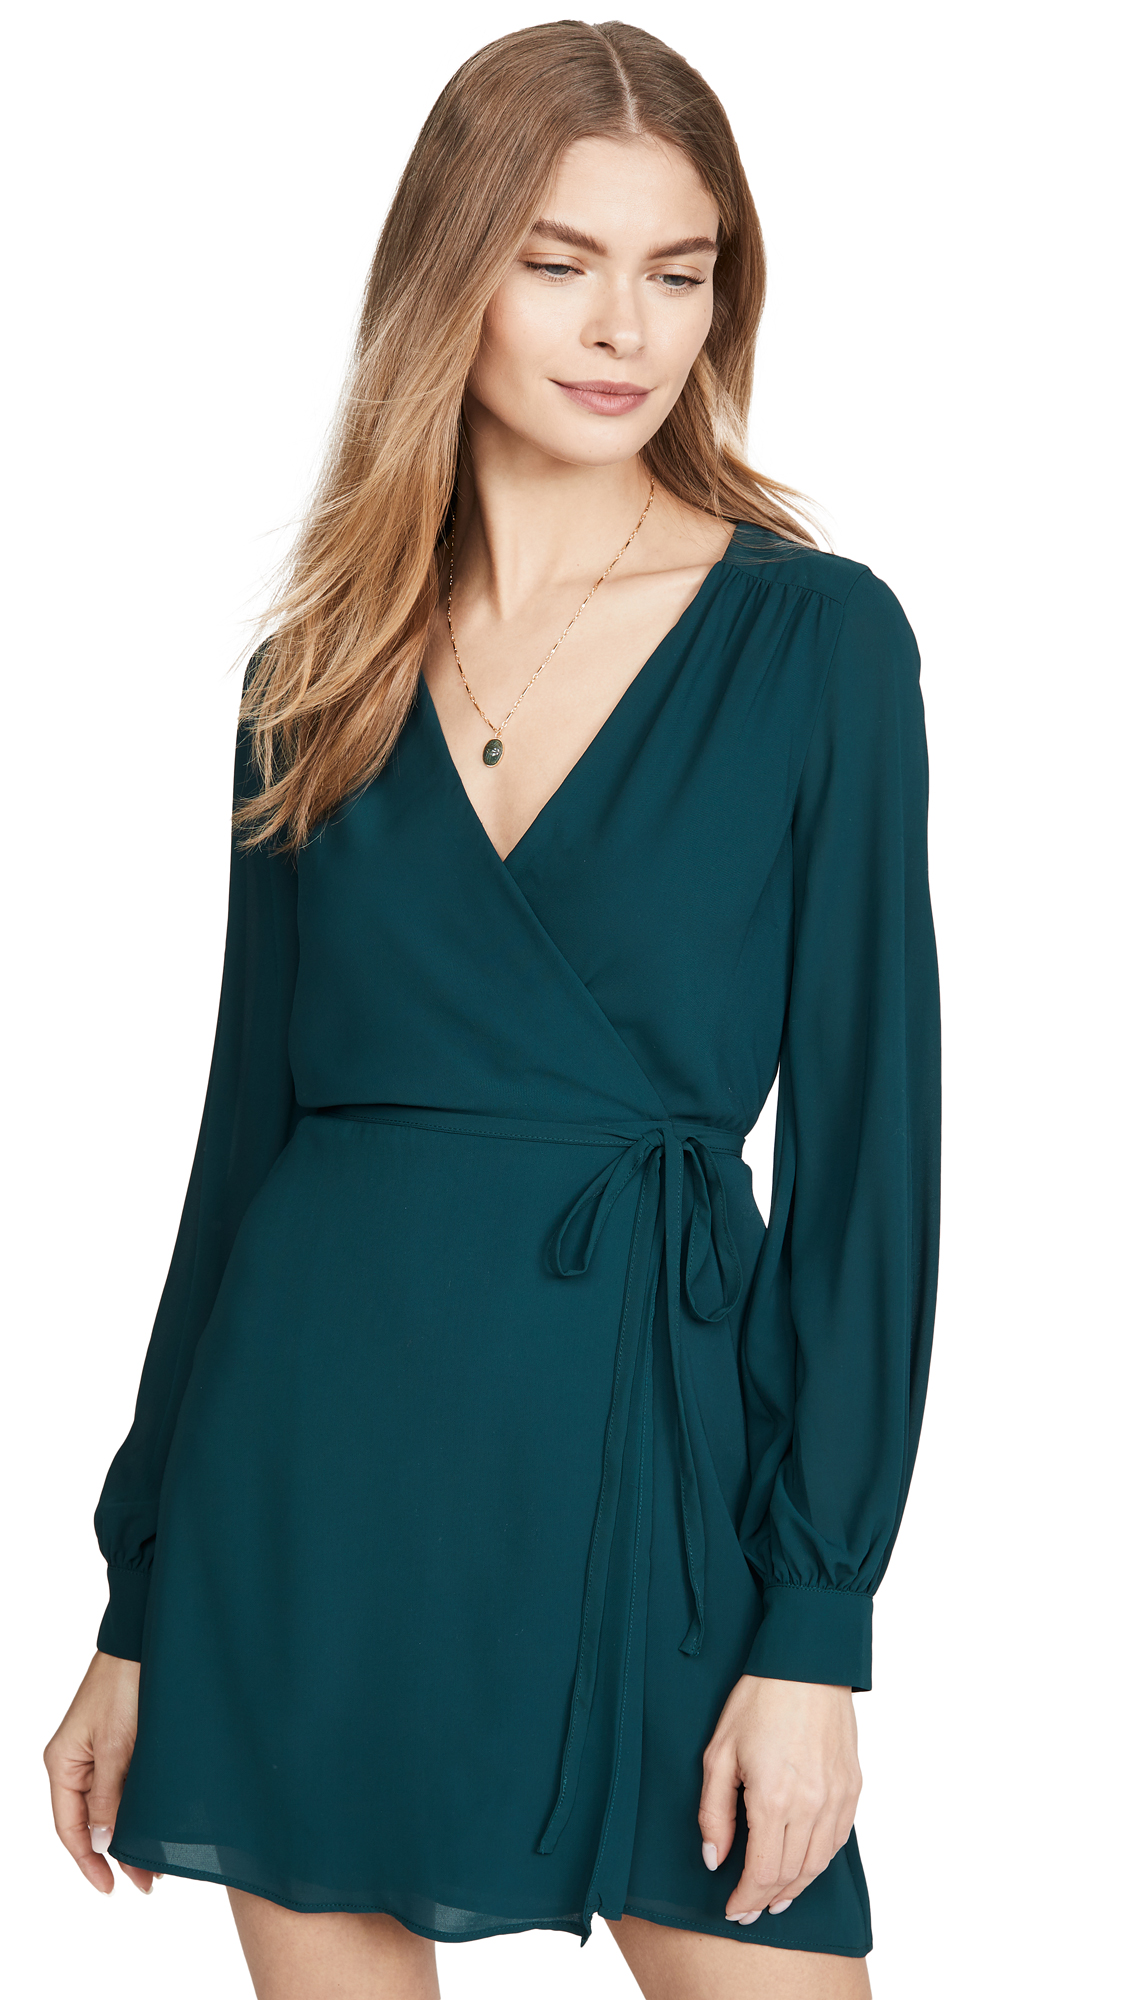 Yumi Kim Night Out Dress - 40% Off Sale